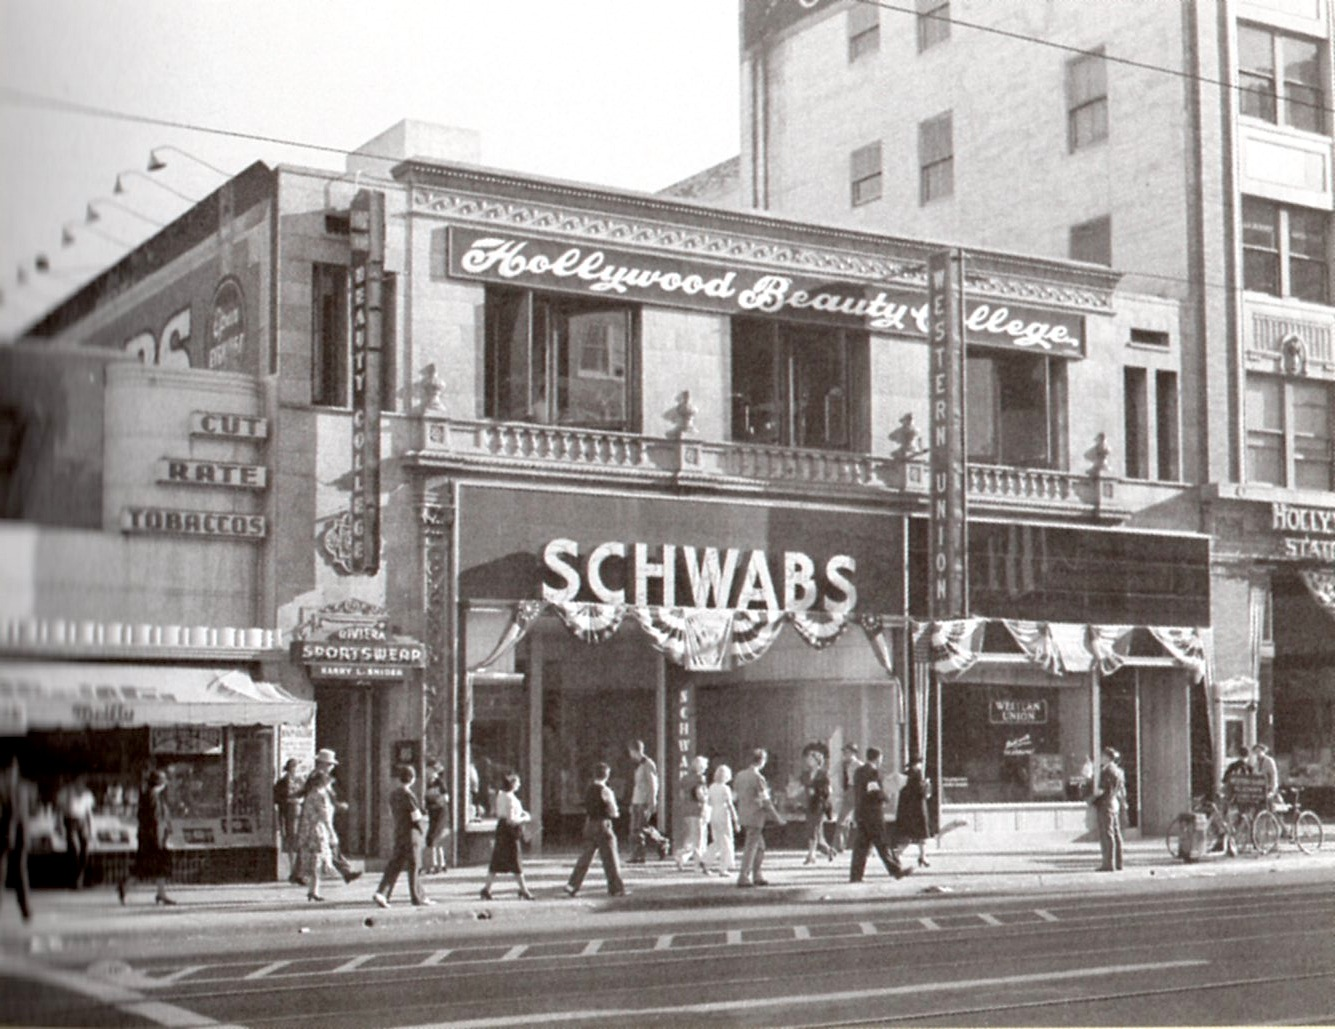 Hollywood blvd stores clothing